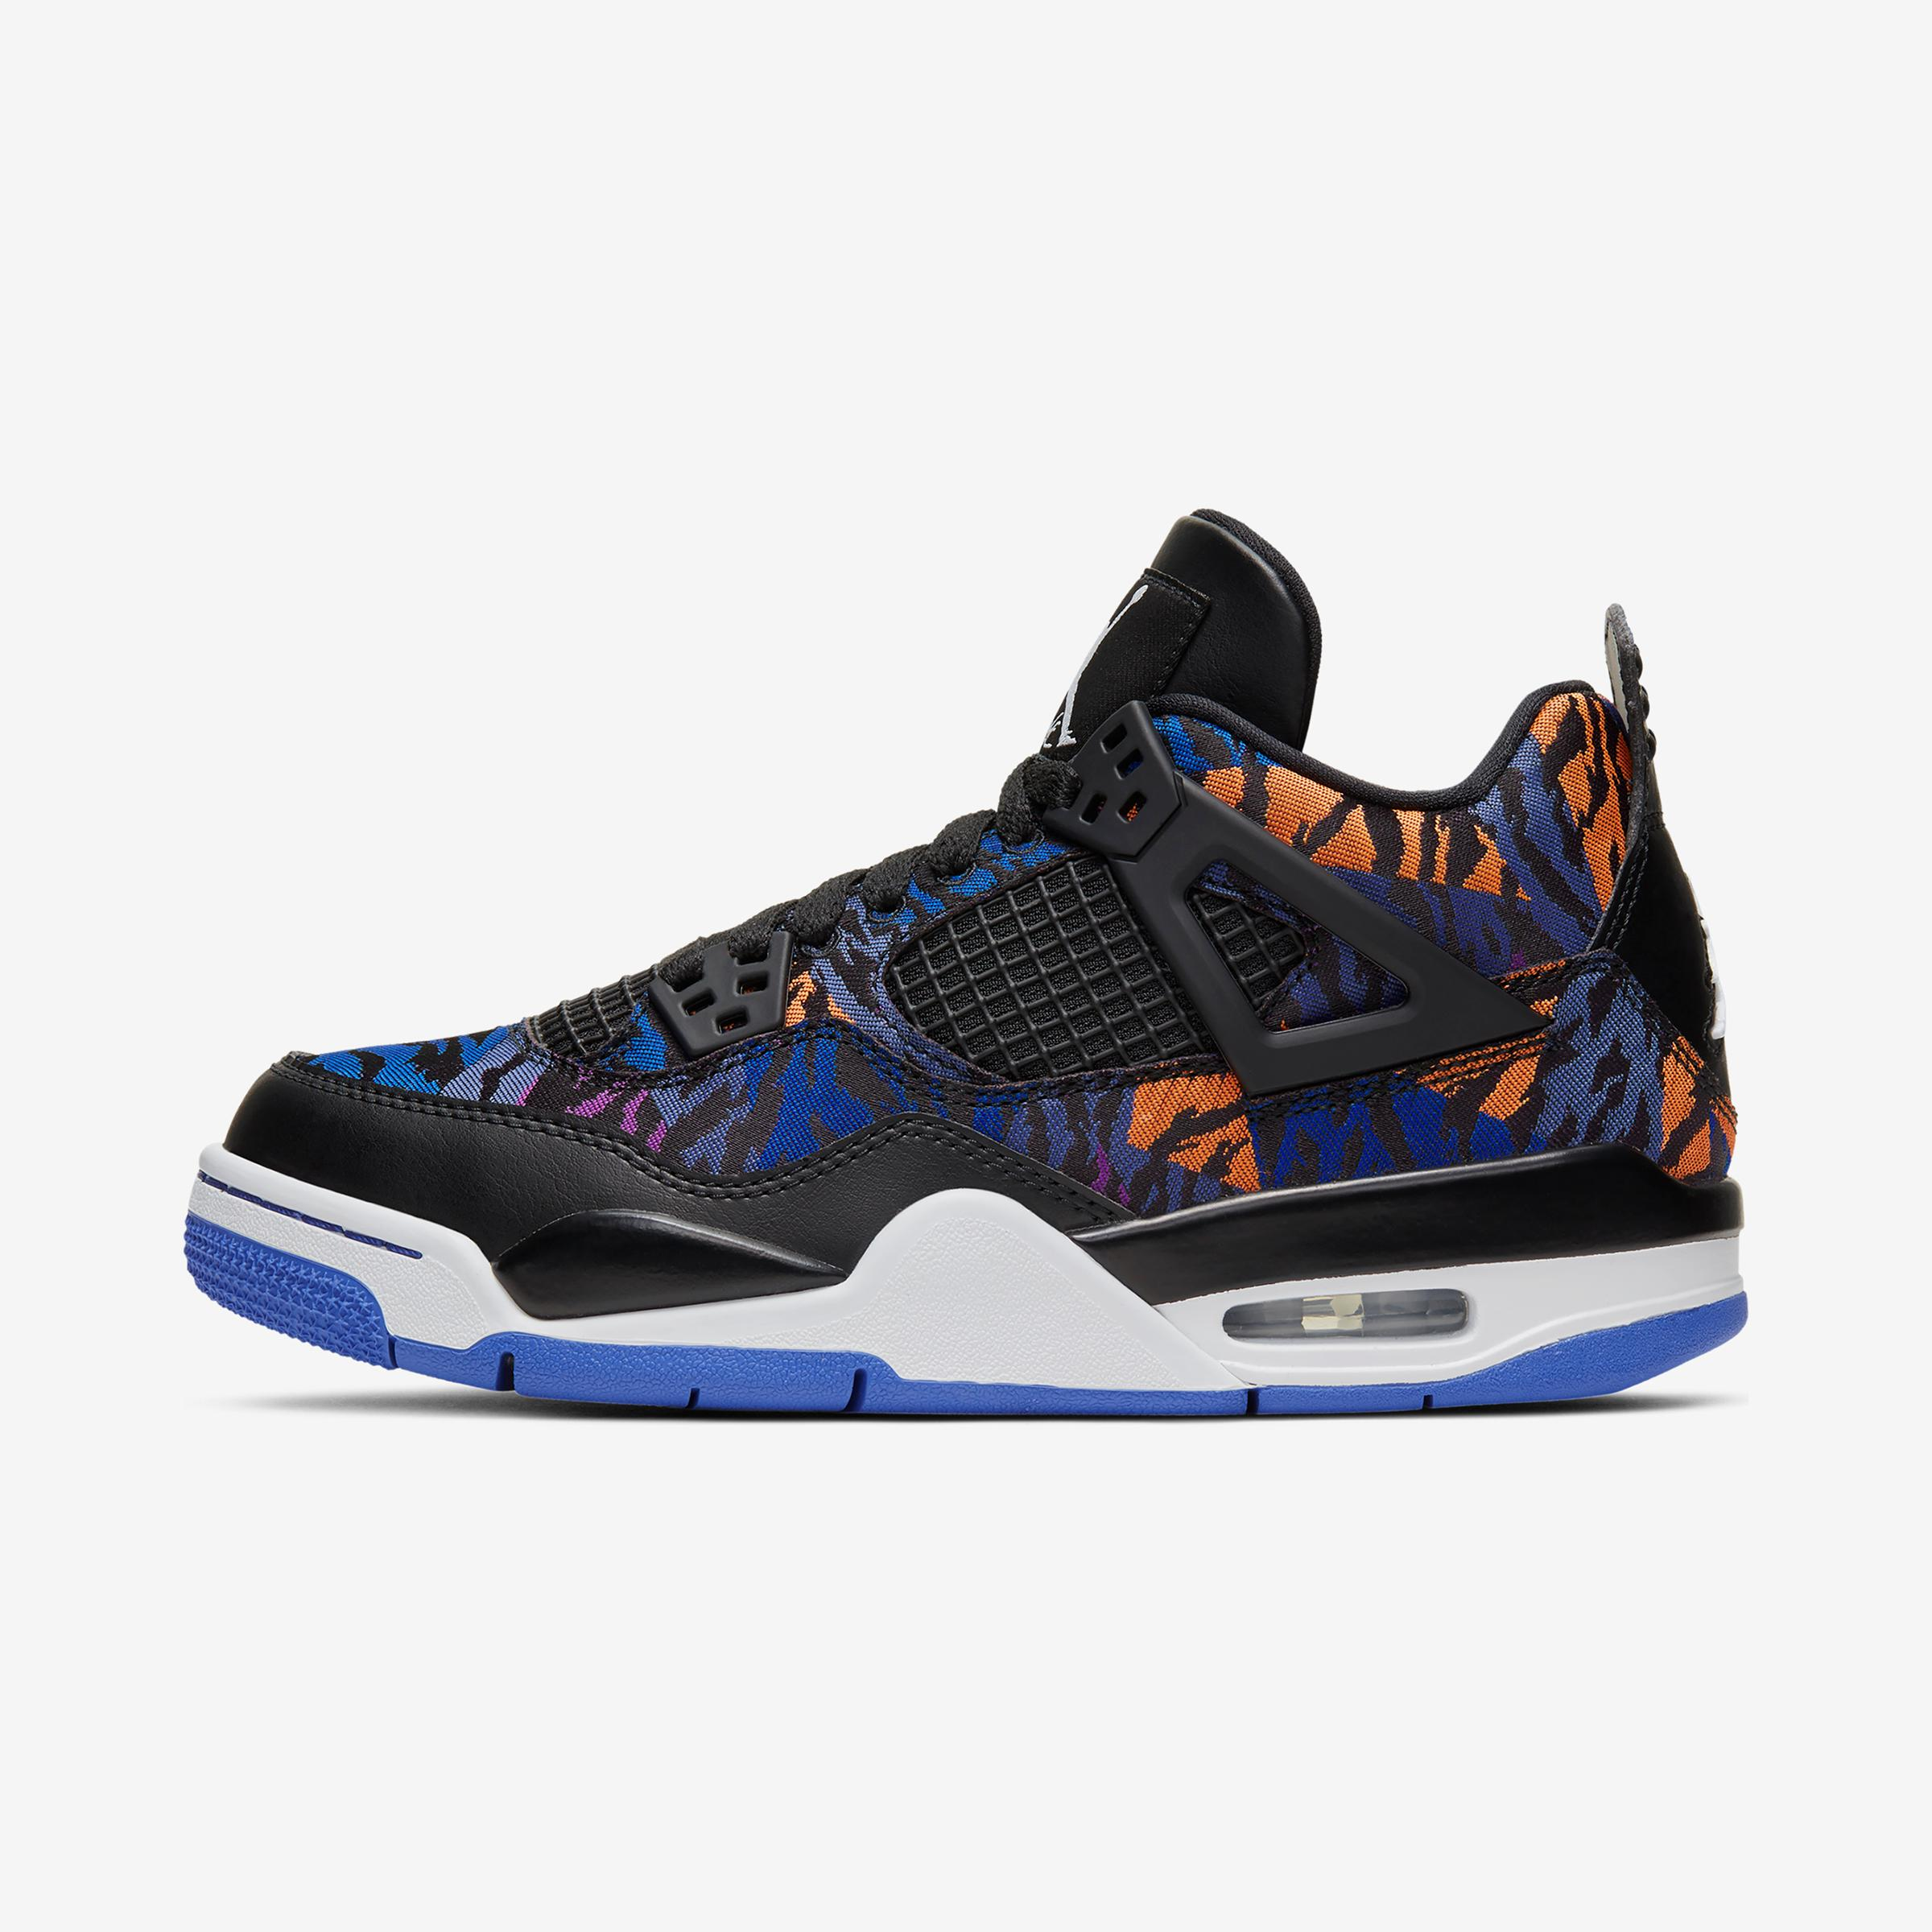 Air Jordan 4 Retro SE 'What The' Release Info: How to